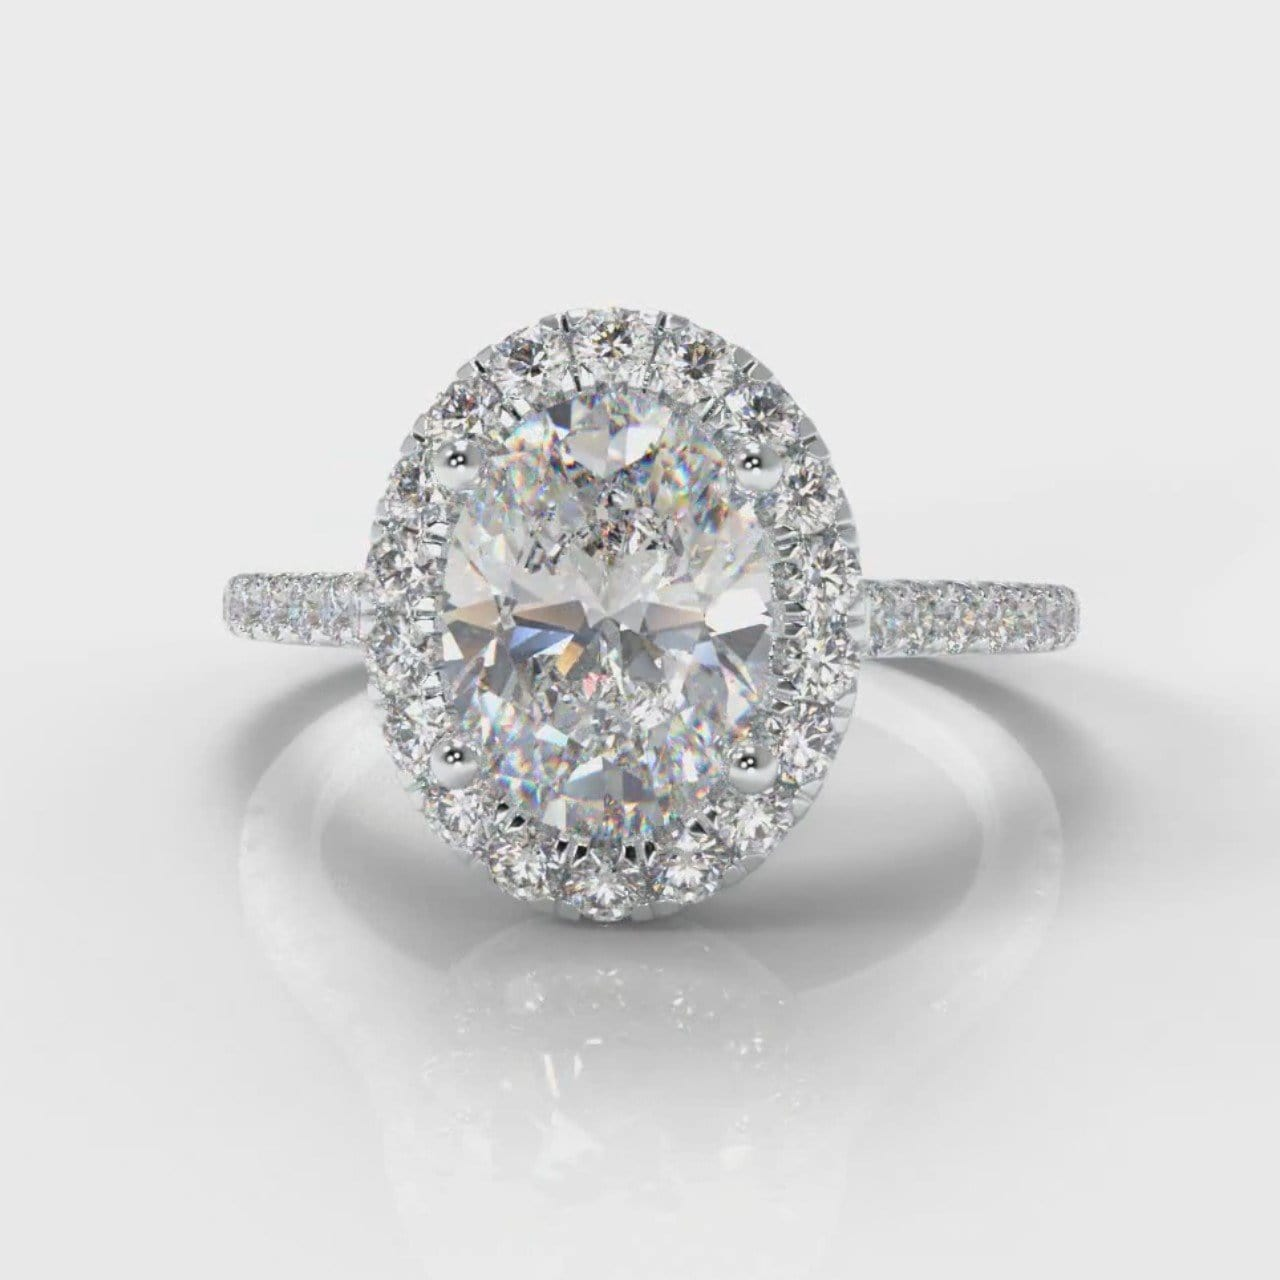 Petite Micropavé Oval Diamond Halo Engagement Ring